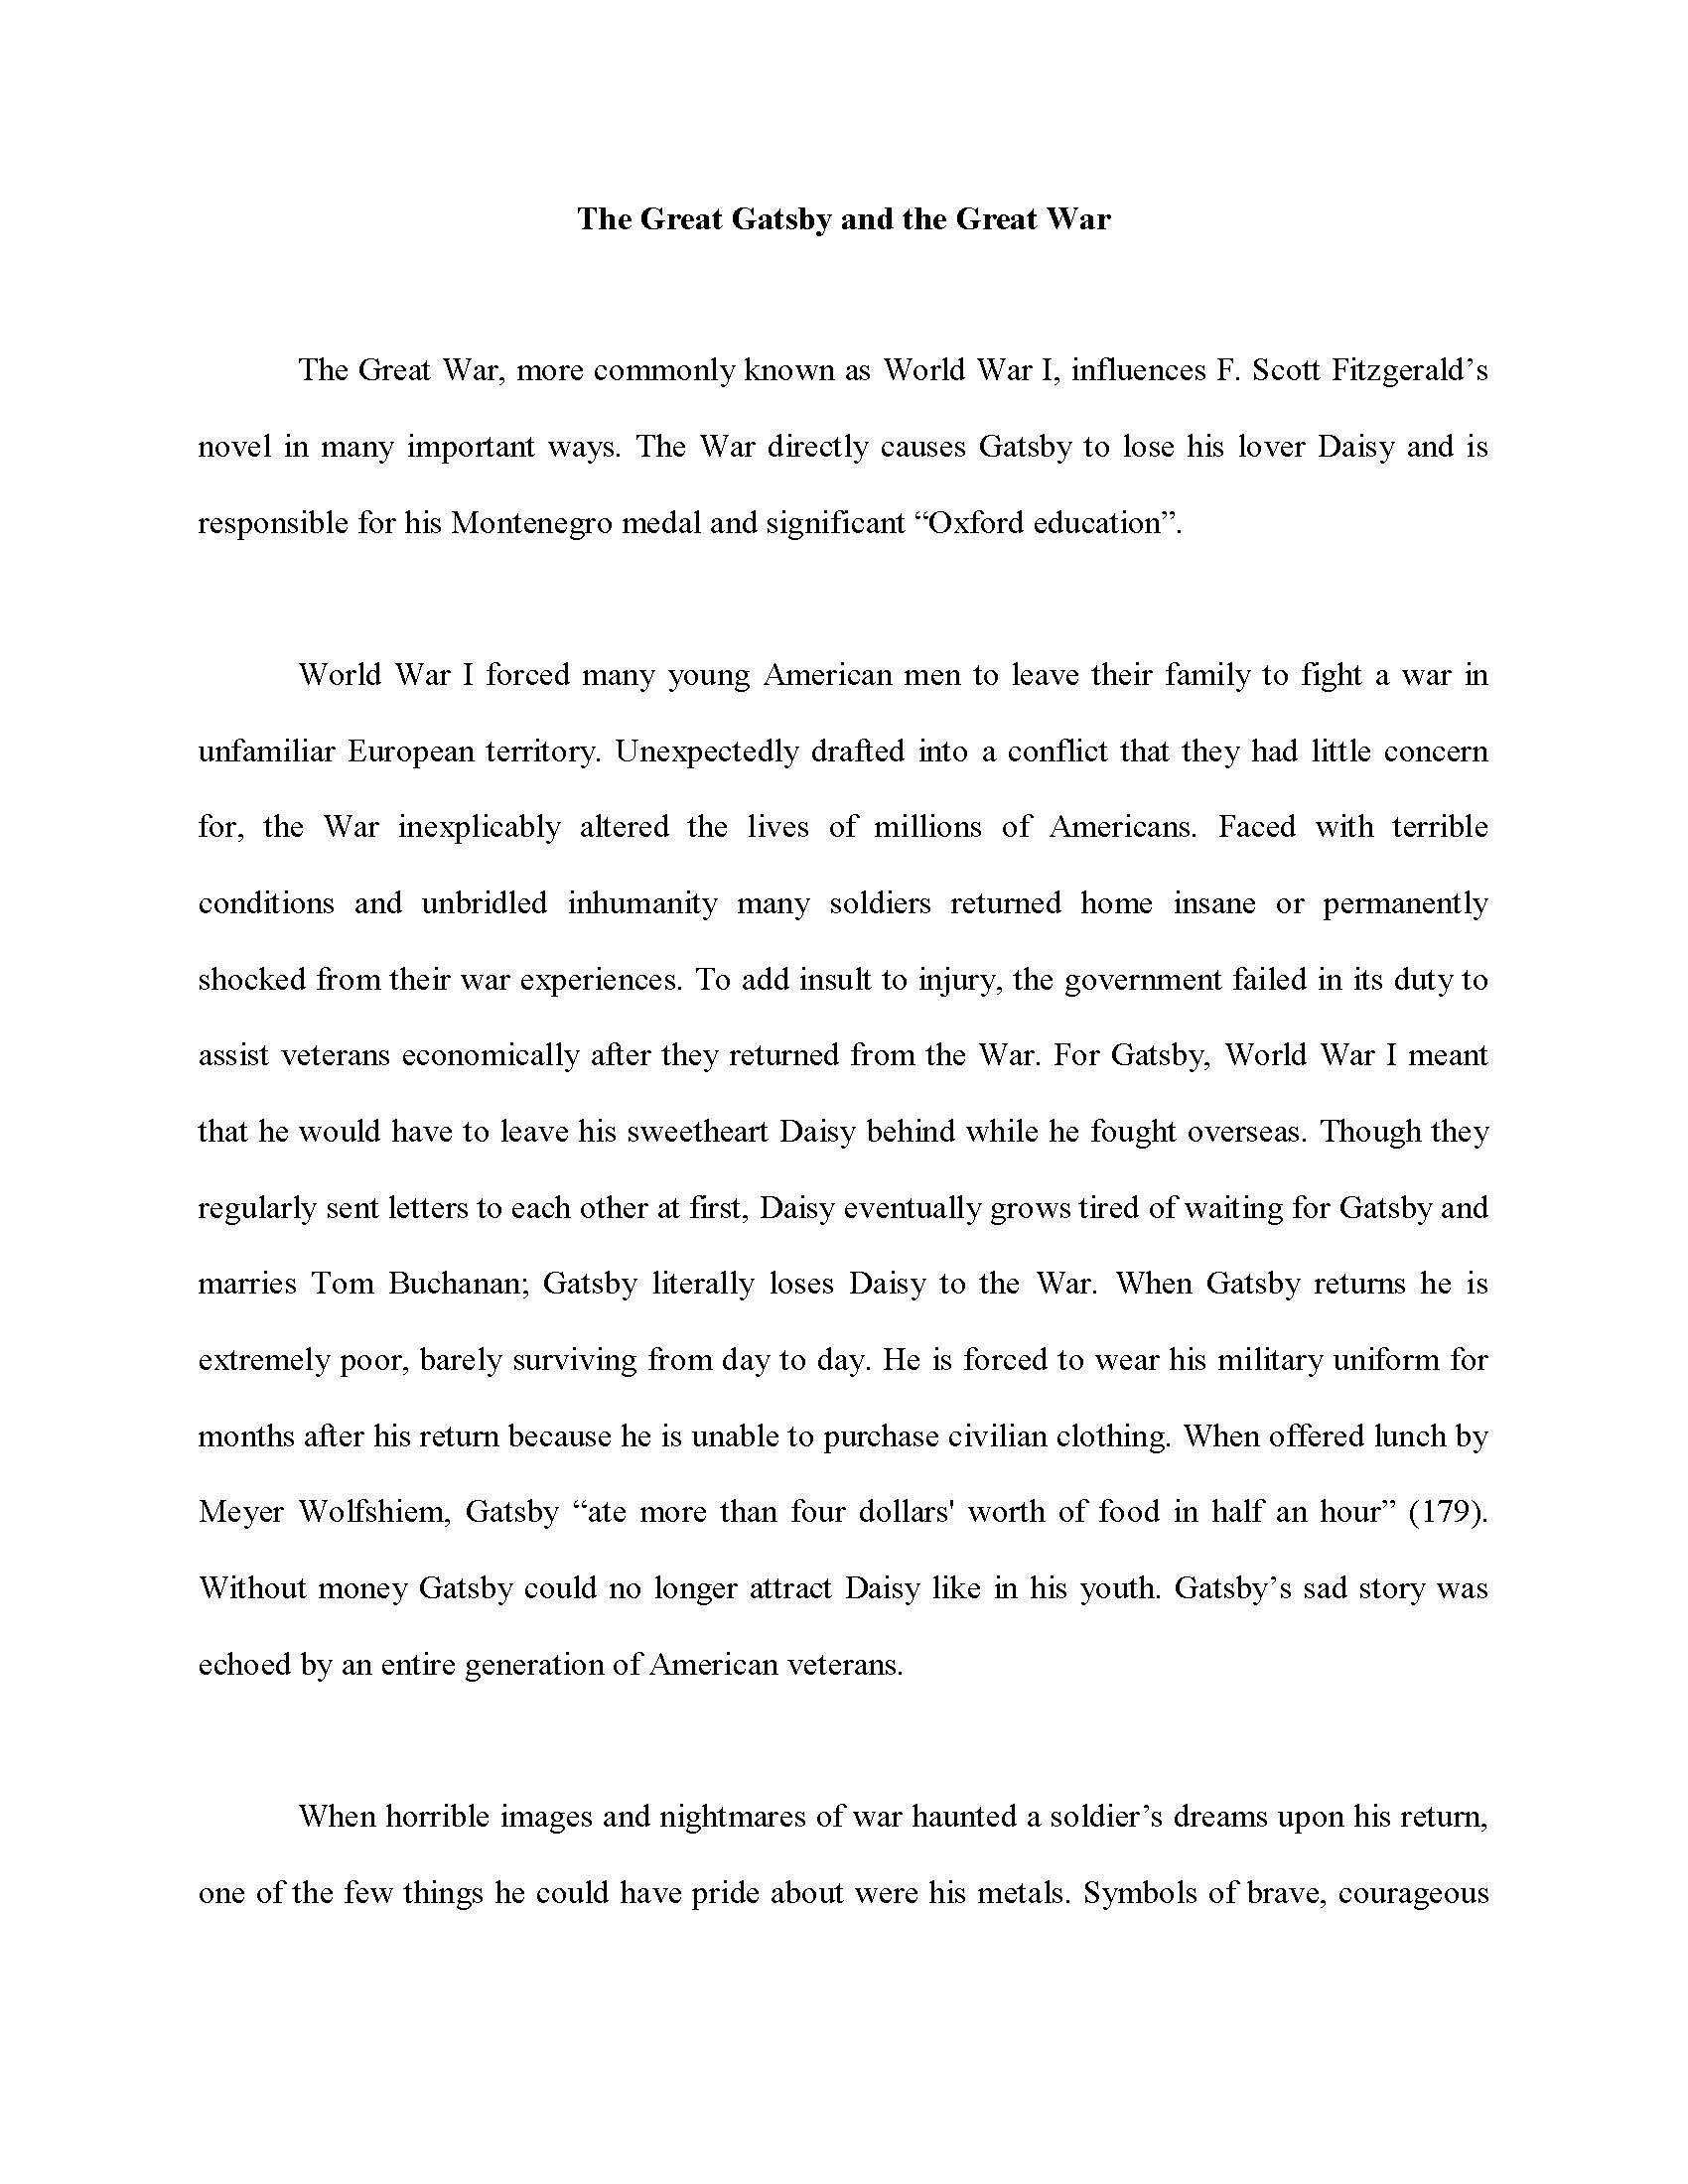 Most influential person essay essay on beethoven essay on beethoven